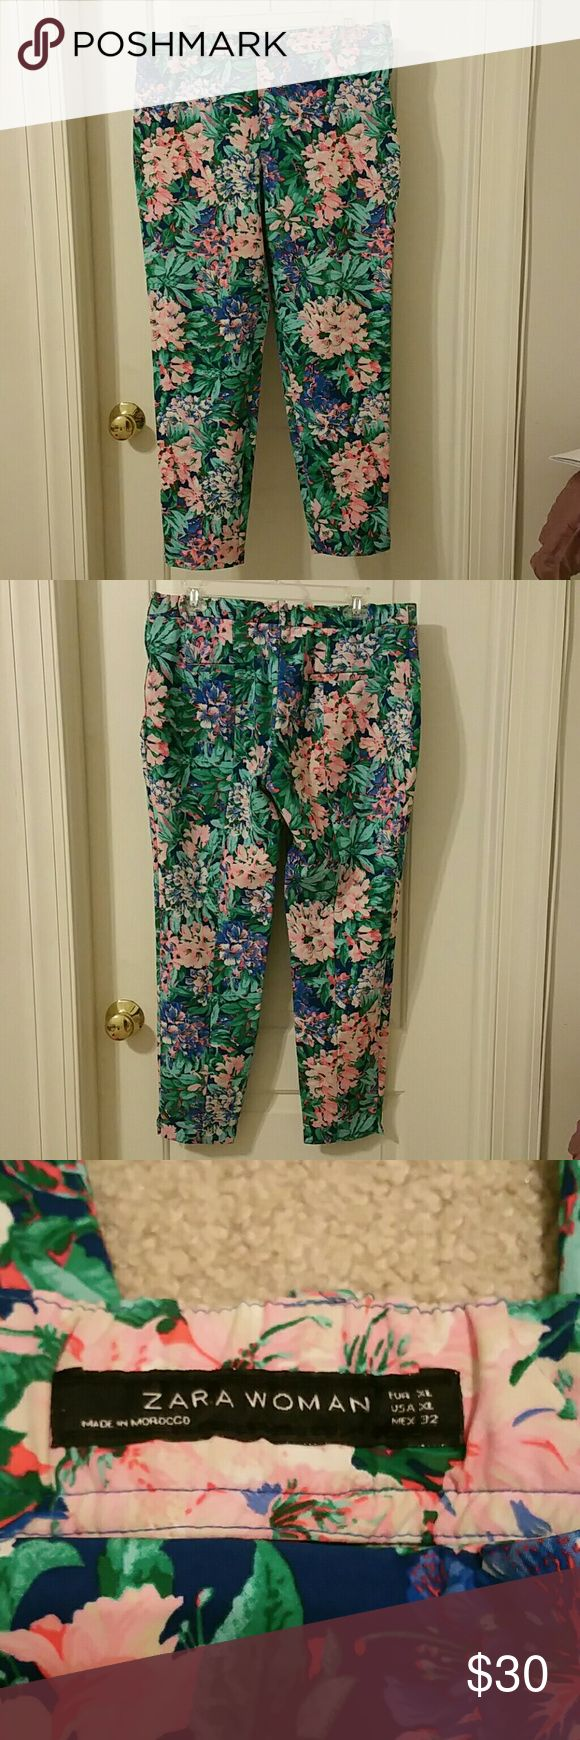 """Zara Woman Floral Trousers Size XL Very pretty floral print trousers with elasticized back, hidden side zipper and a small slit at the bottom on the sides. Belt loops and no pockets. Not sure what the material is because tags are missing. It is a nice thick material with some stretch to it. Waist 17"""", rise 10"""", inseam 27.5"""" and leg opening 6"""". Excellent condition, no signs of wear.  NO TRADES  NO PAYPAL Zara Pants Trousers"""